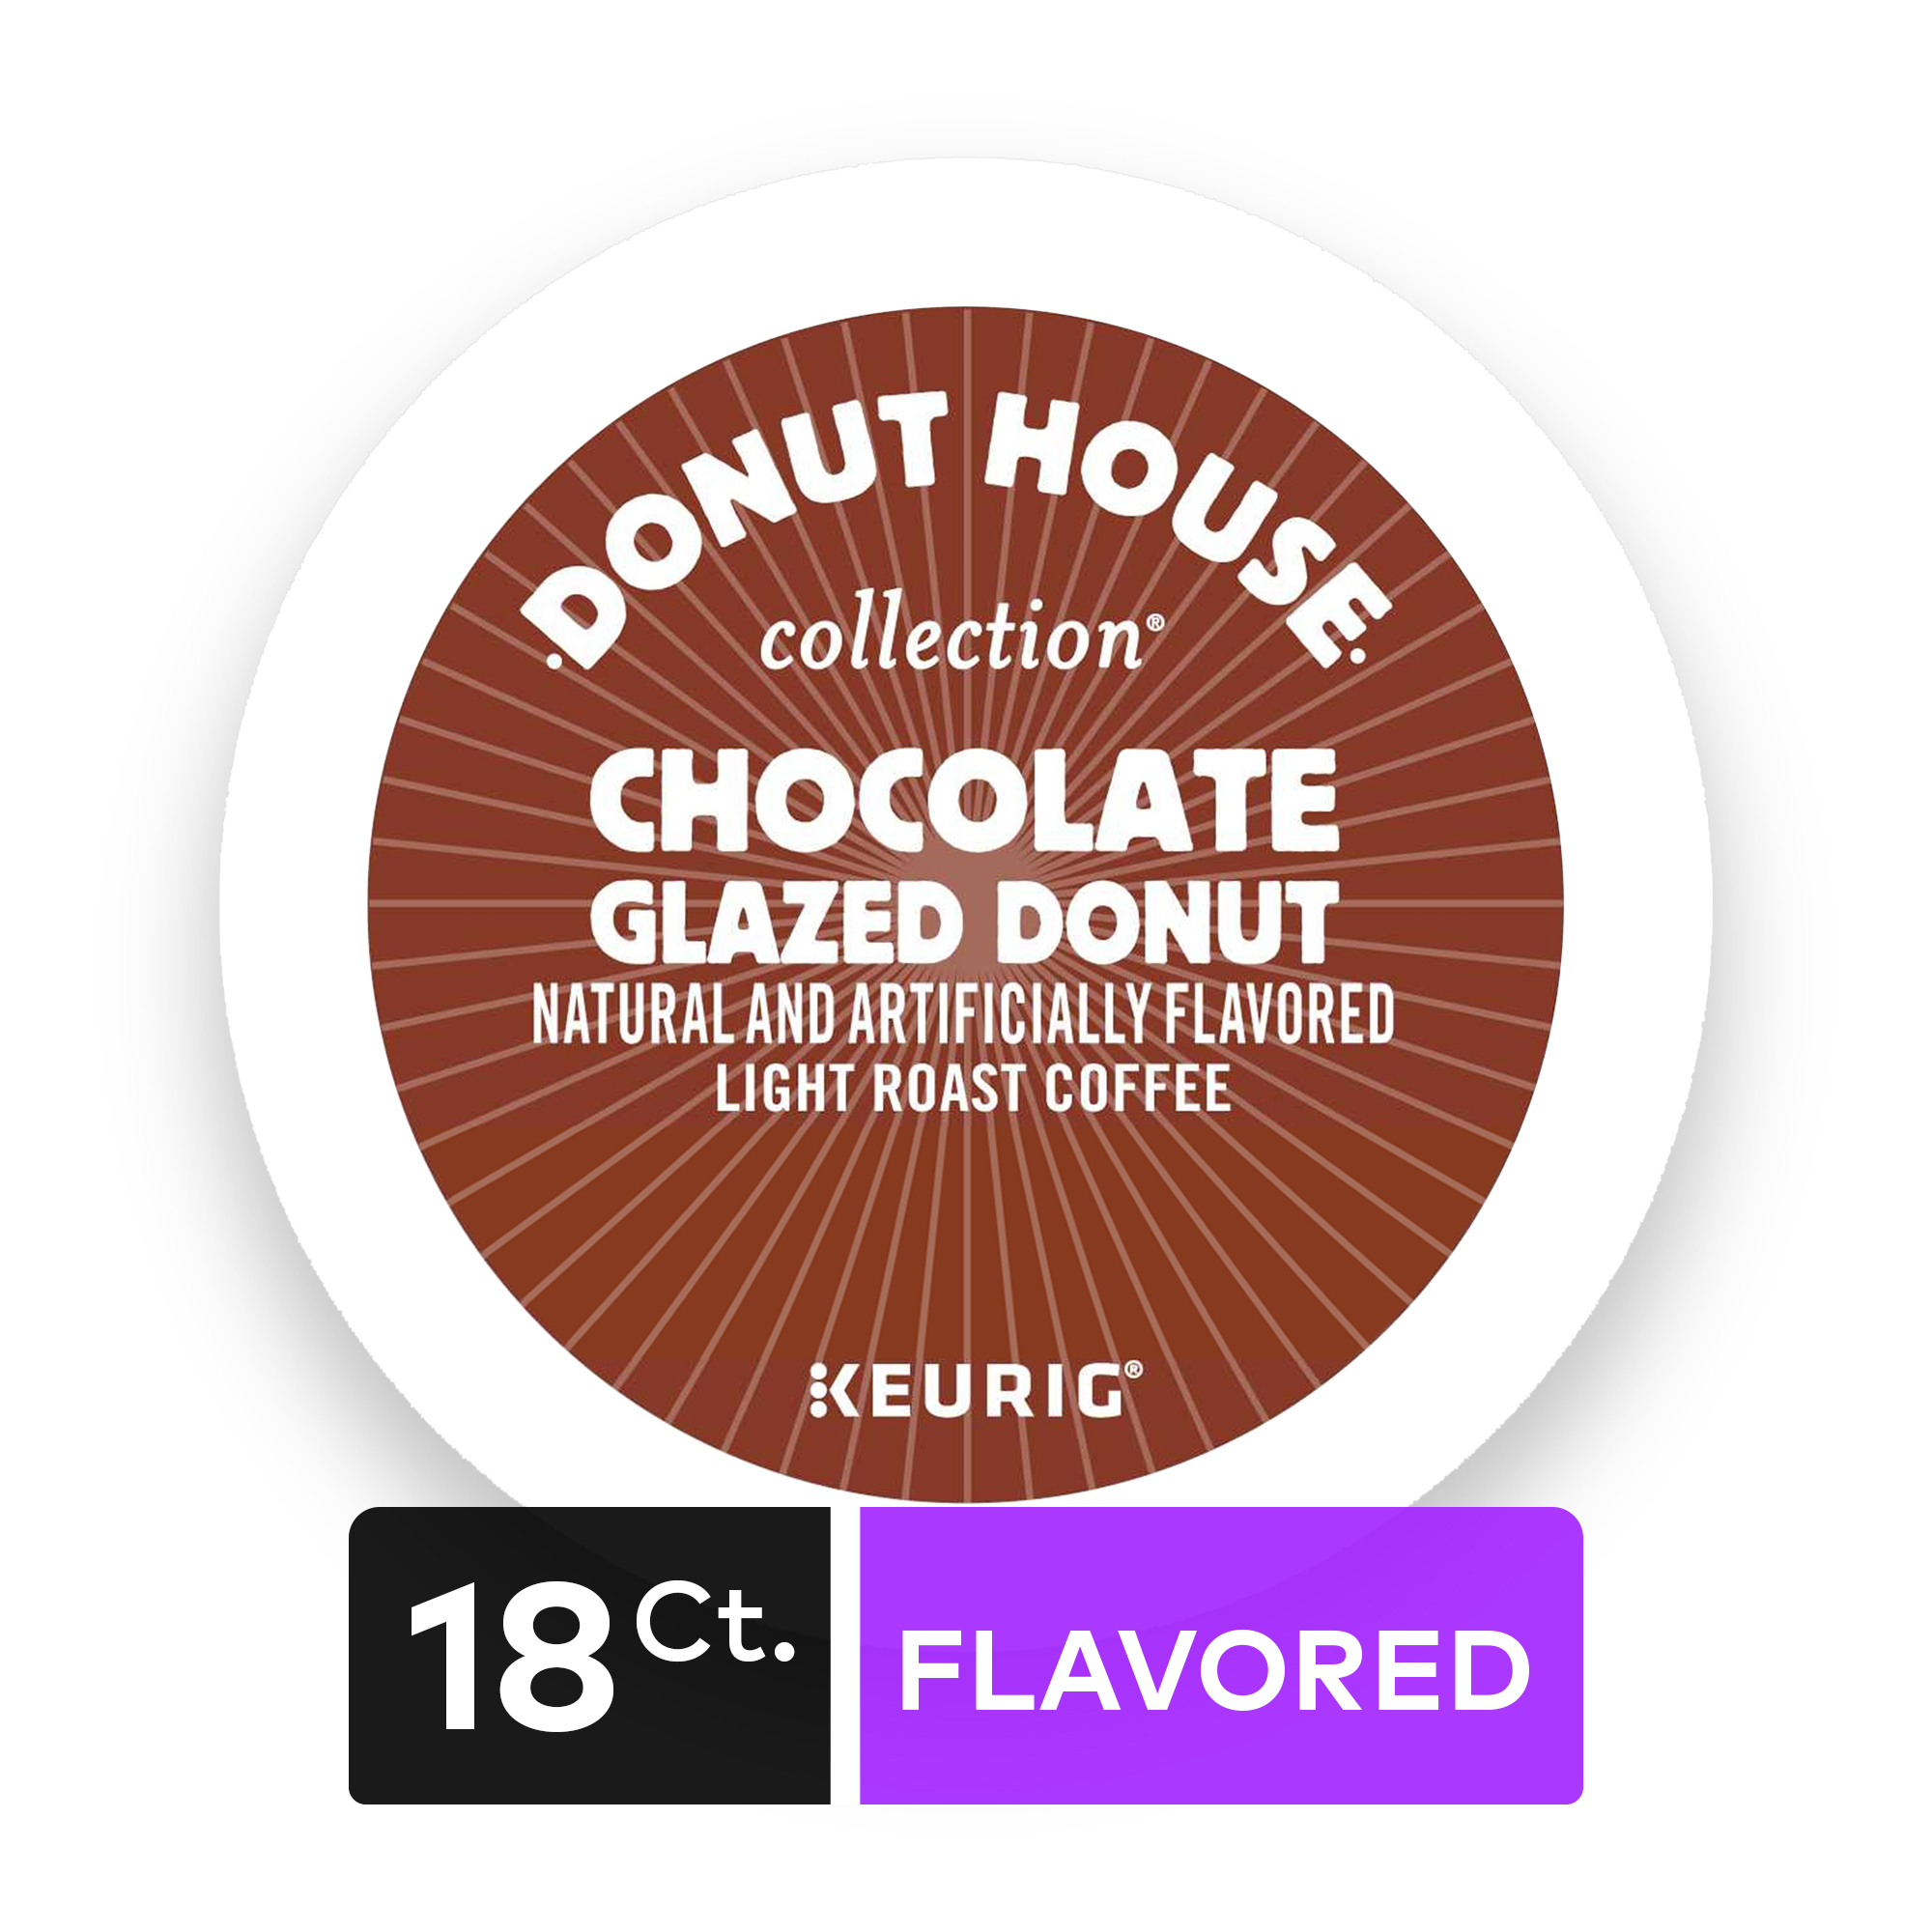 Donut House Collection Chocolate Glazed Donut Keurig Single-Serve K-Cup Pods, Light Roast Coffee, 18 Count